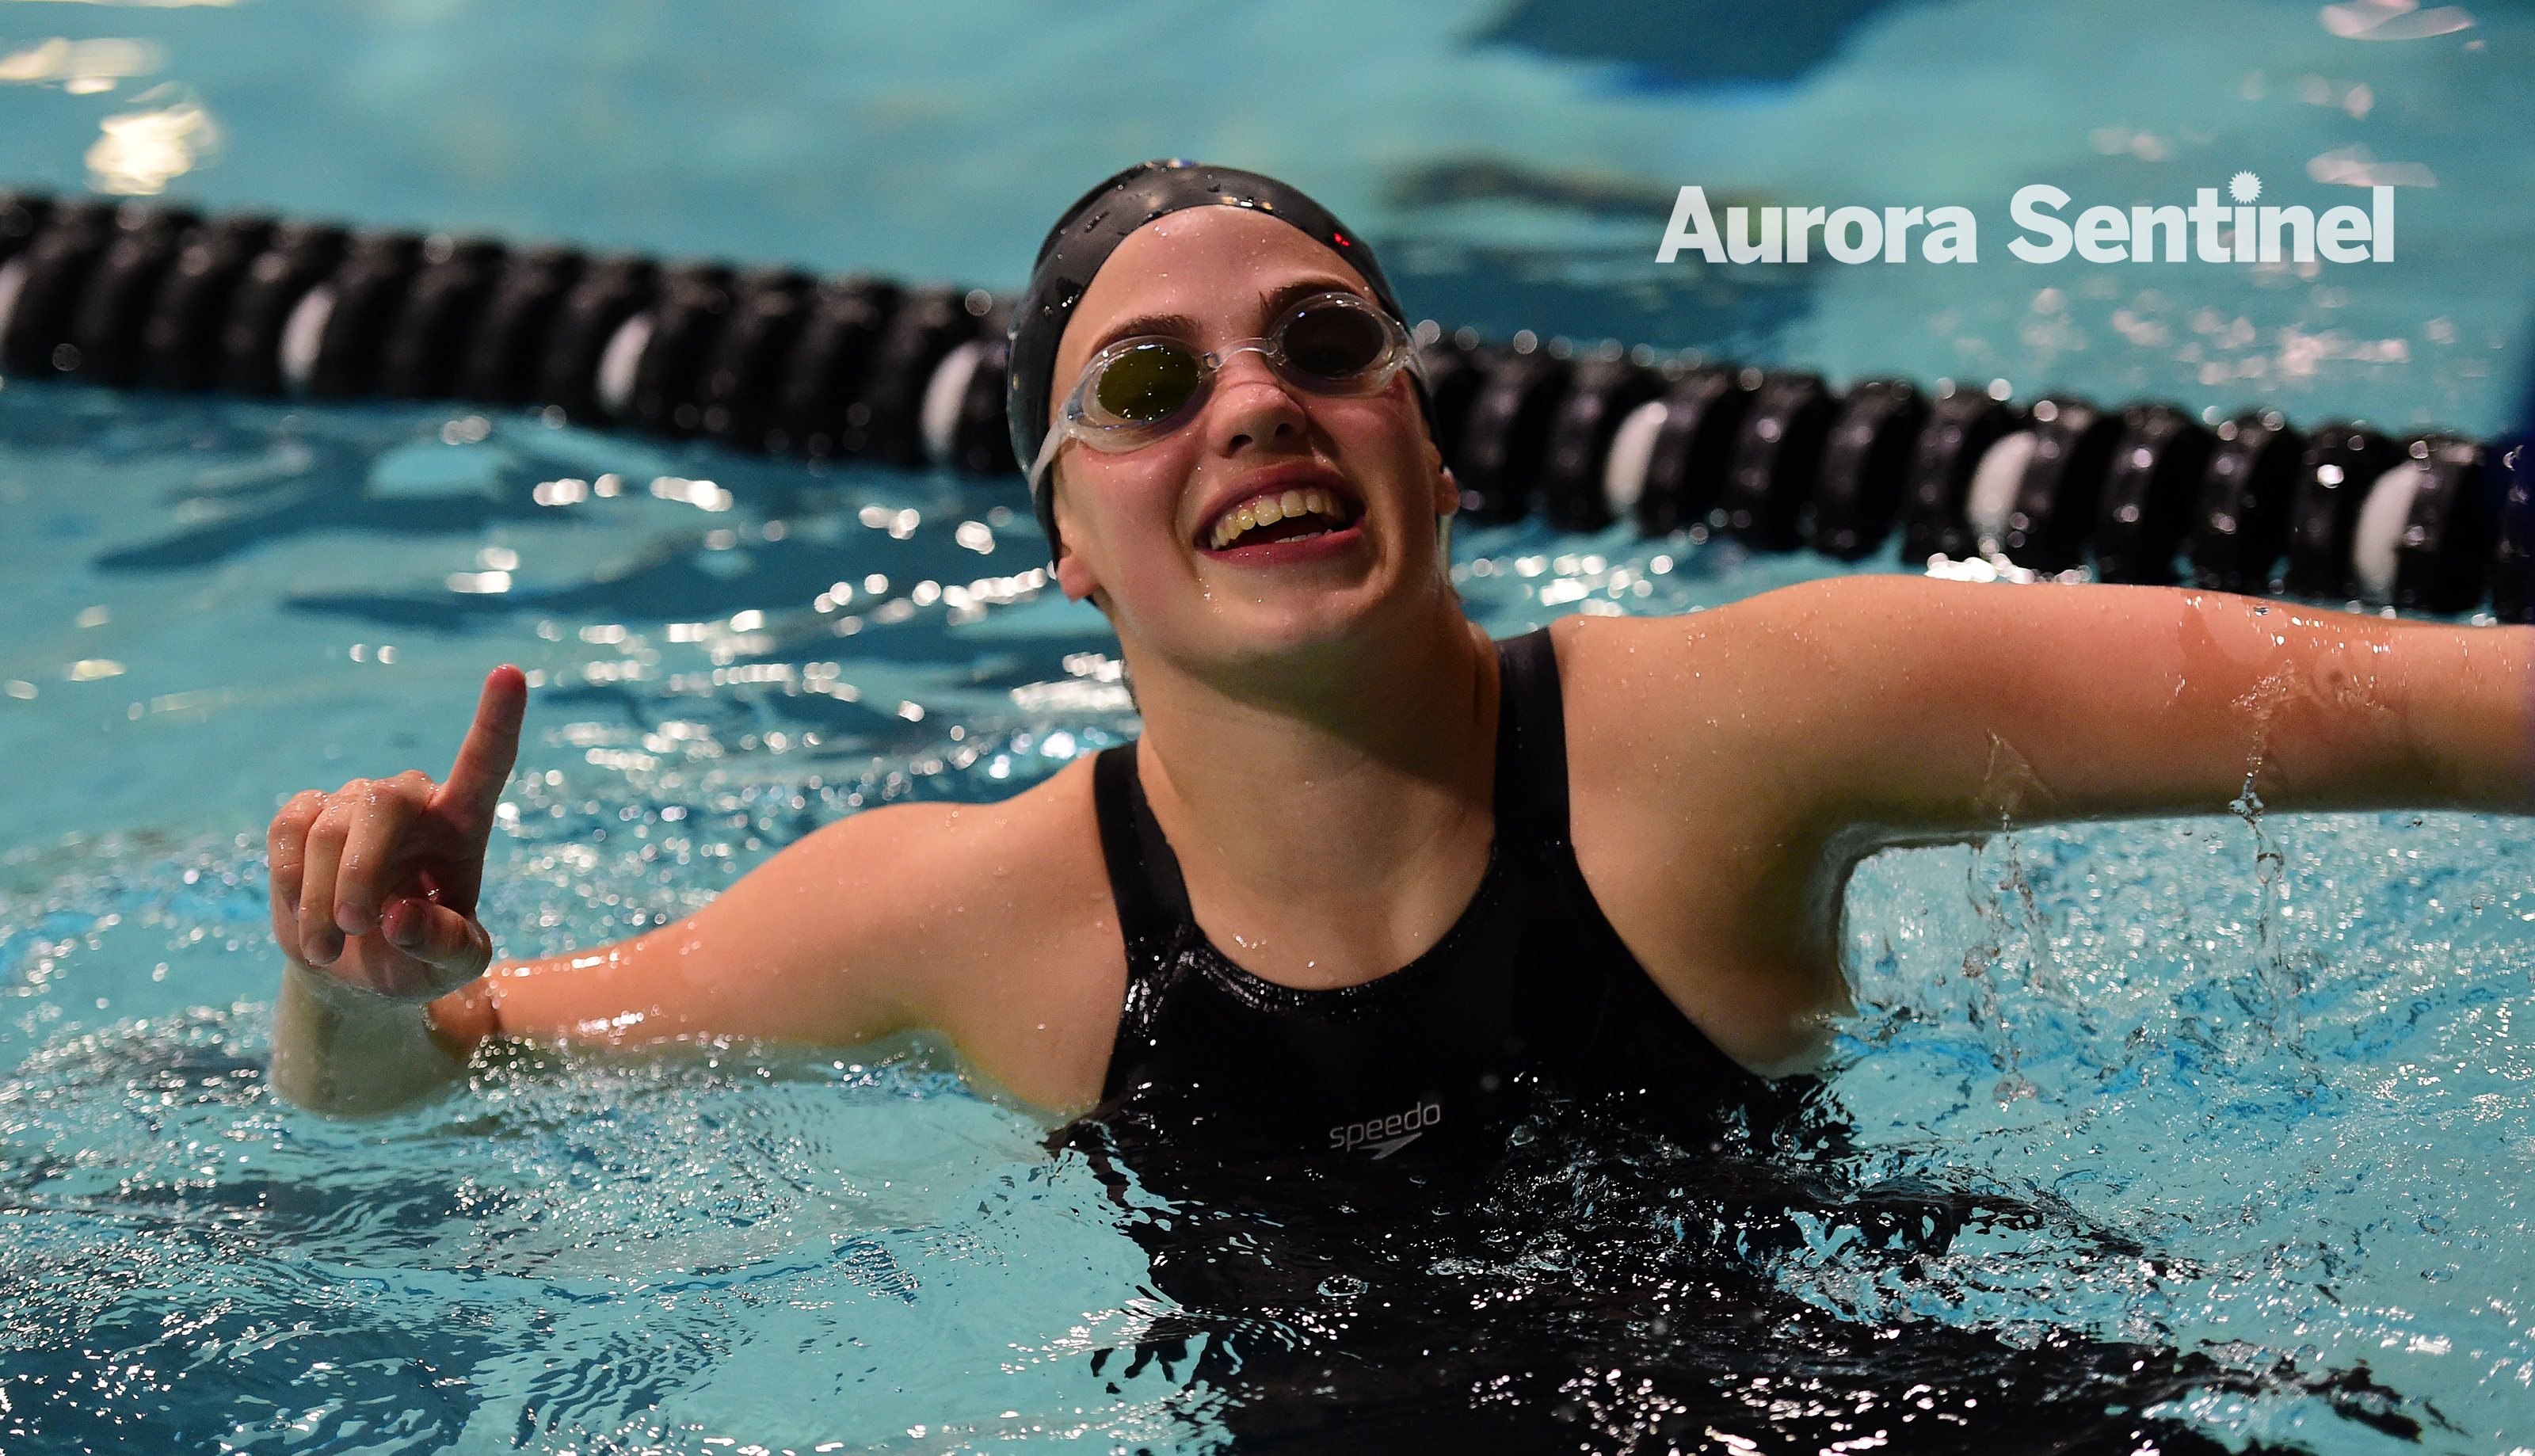 Girls Swimming 2017 Centennial A League Championships Meet Results Aurora News Newslocker